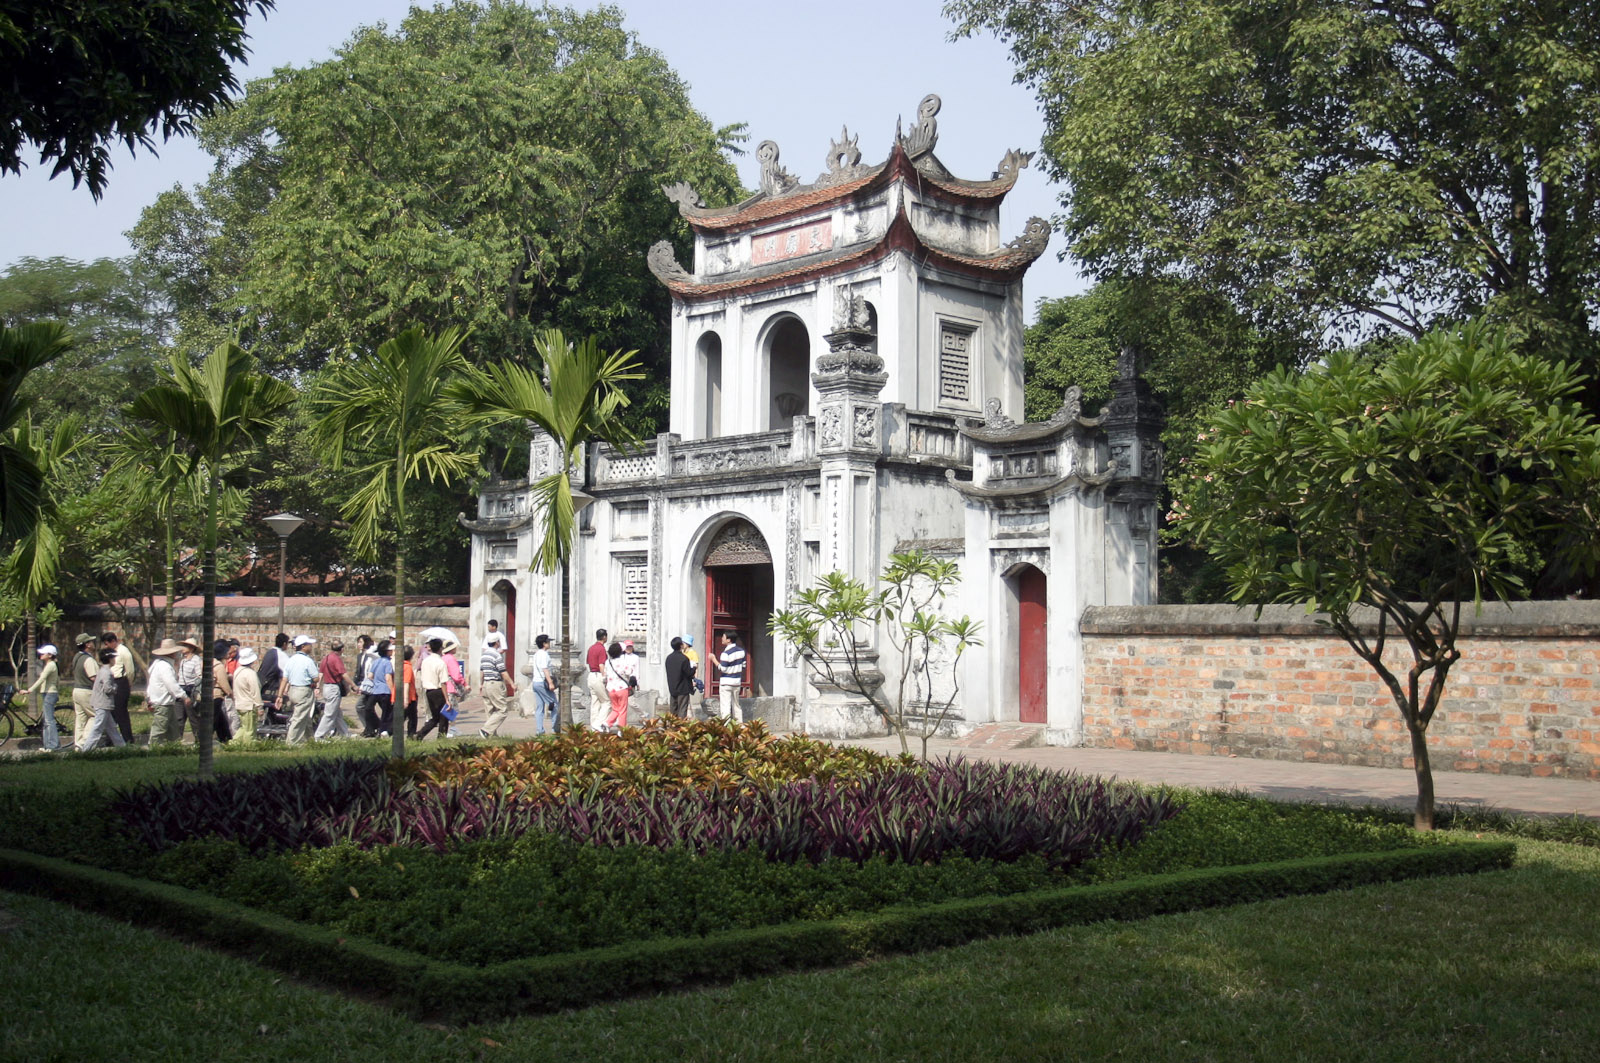 Image of the Main Gate at the Temple of Literature in Hanoi, Vietnam